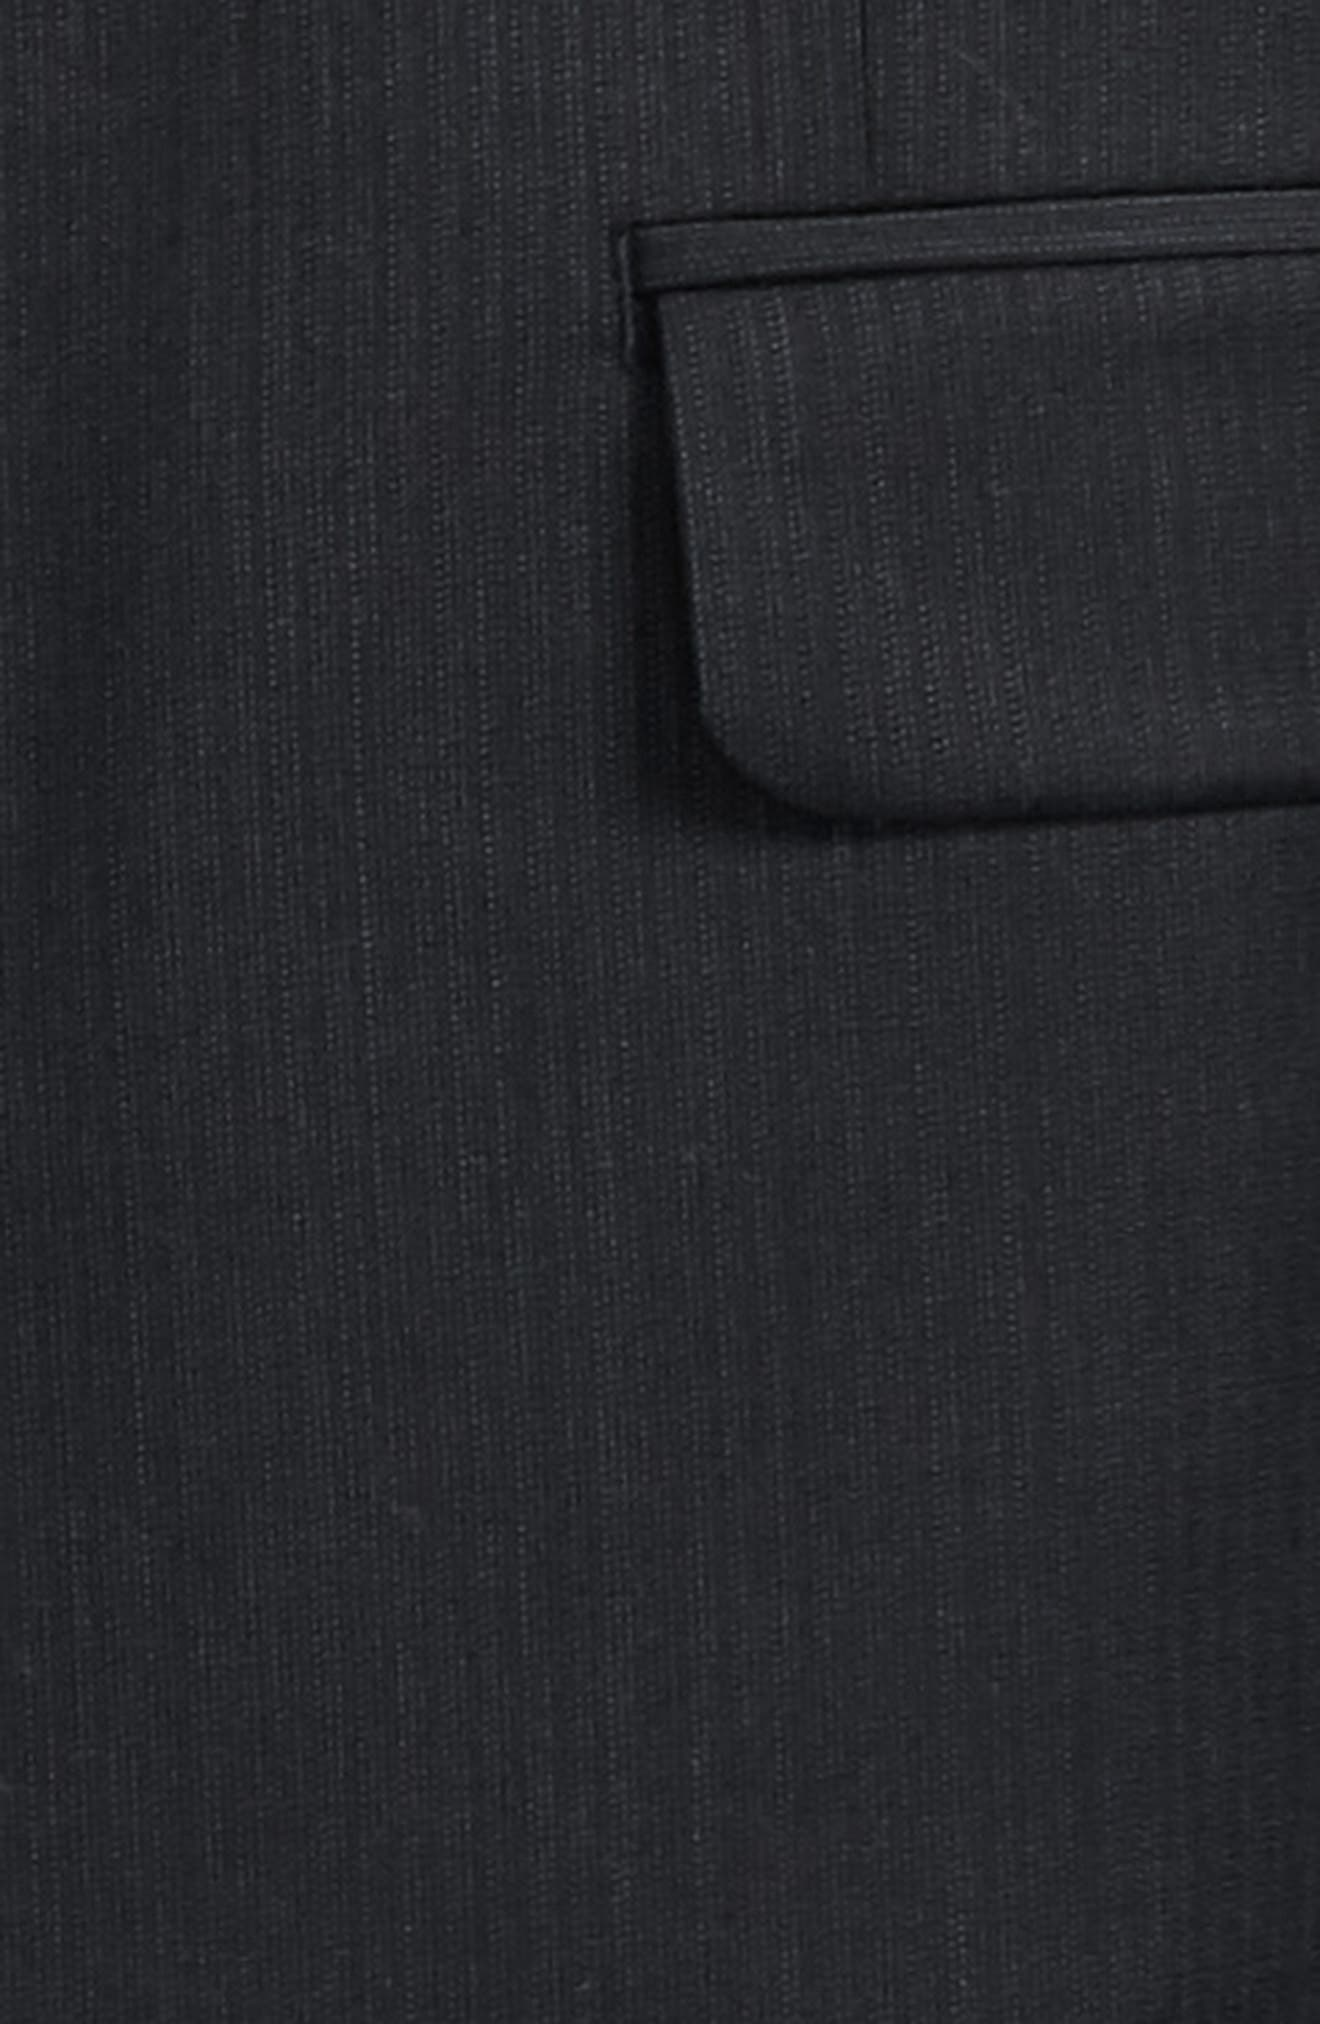 Stripe Wool Suit,                             Alternate thumbnail 2, color,                             001